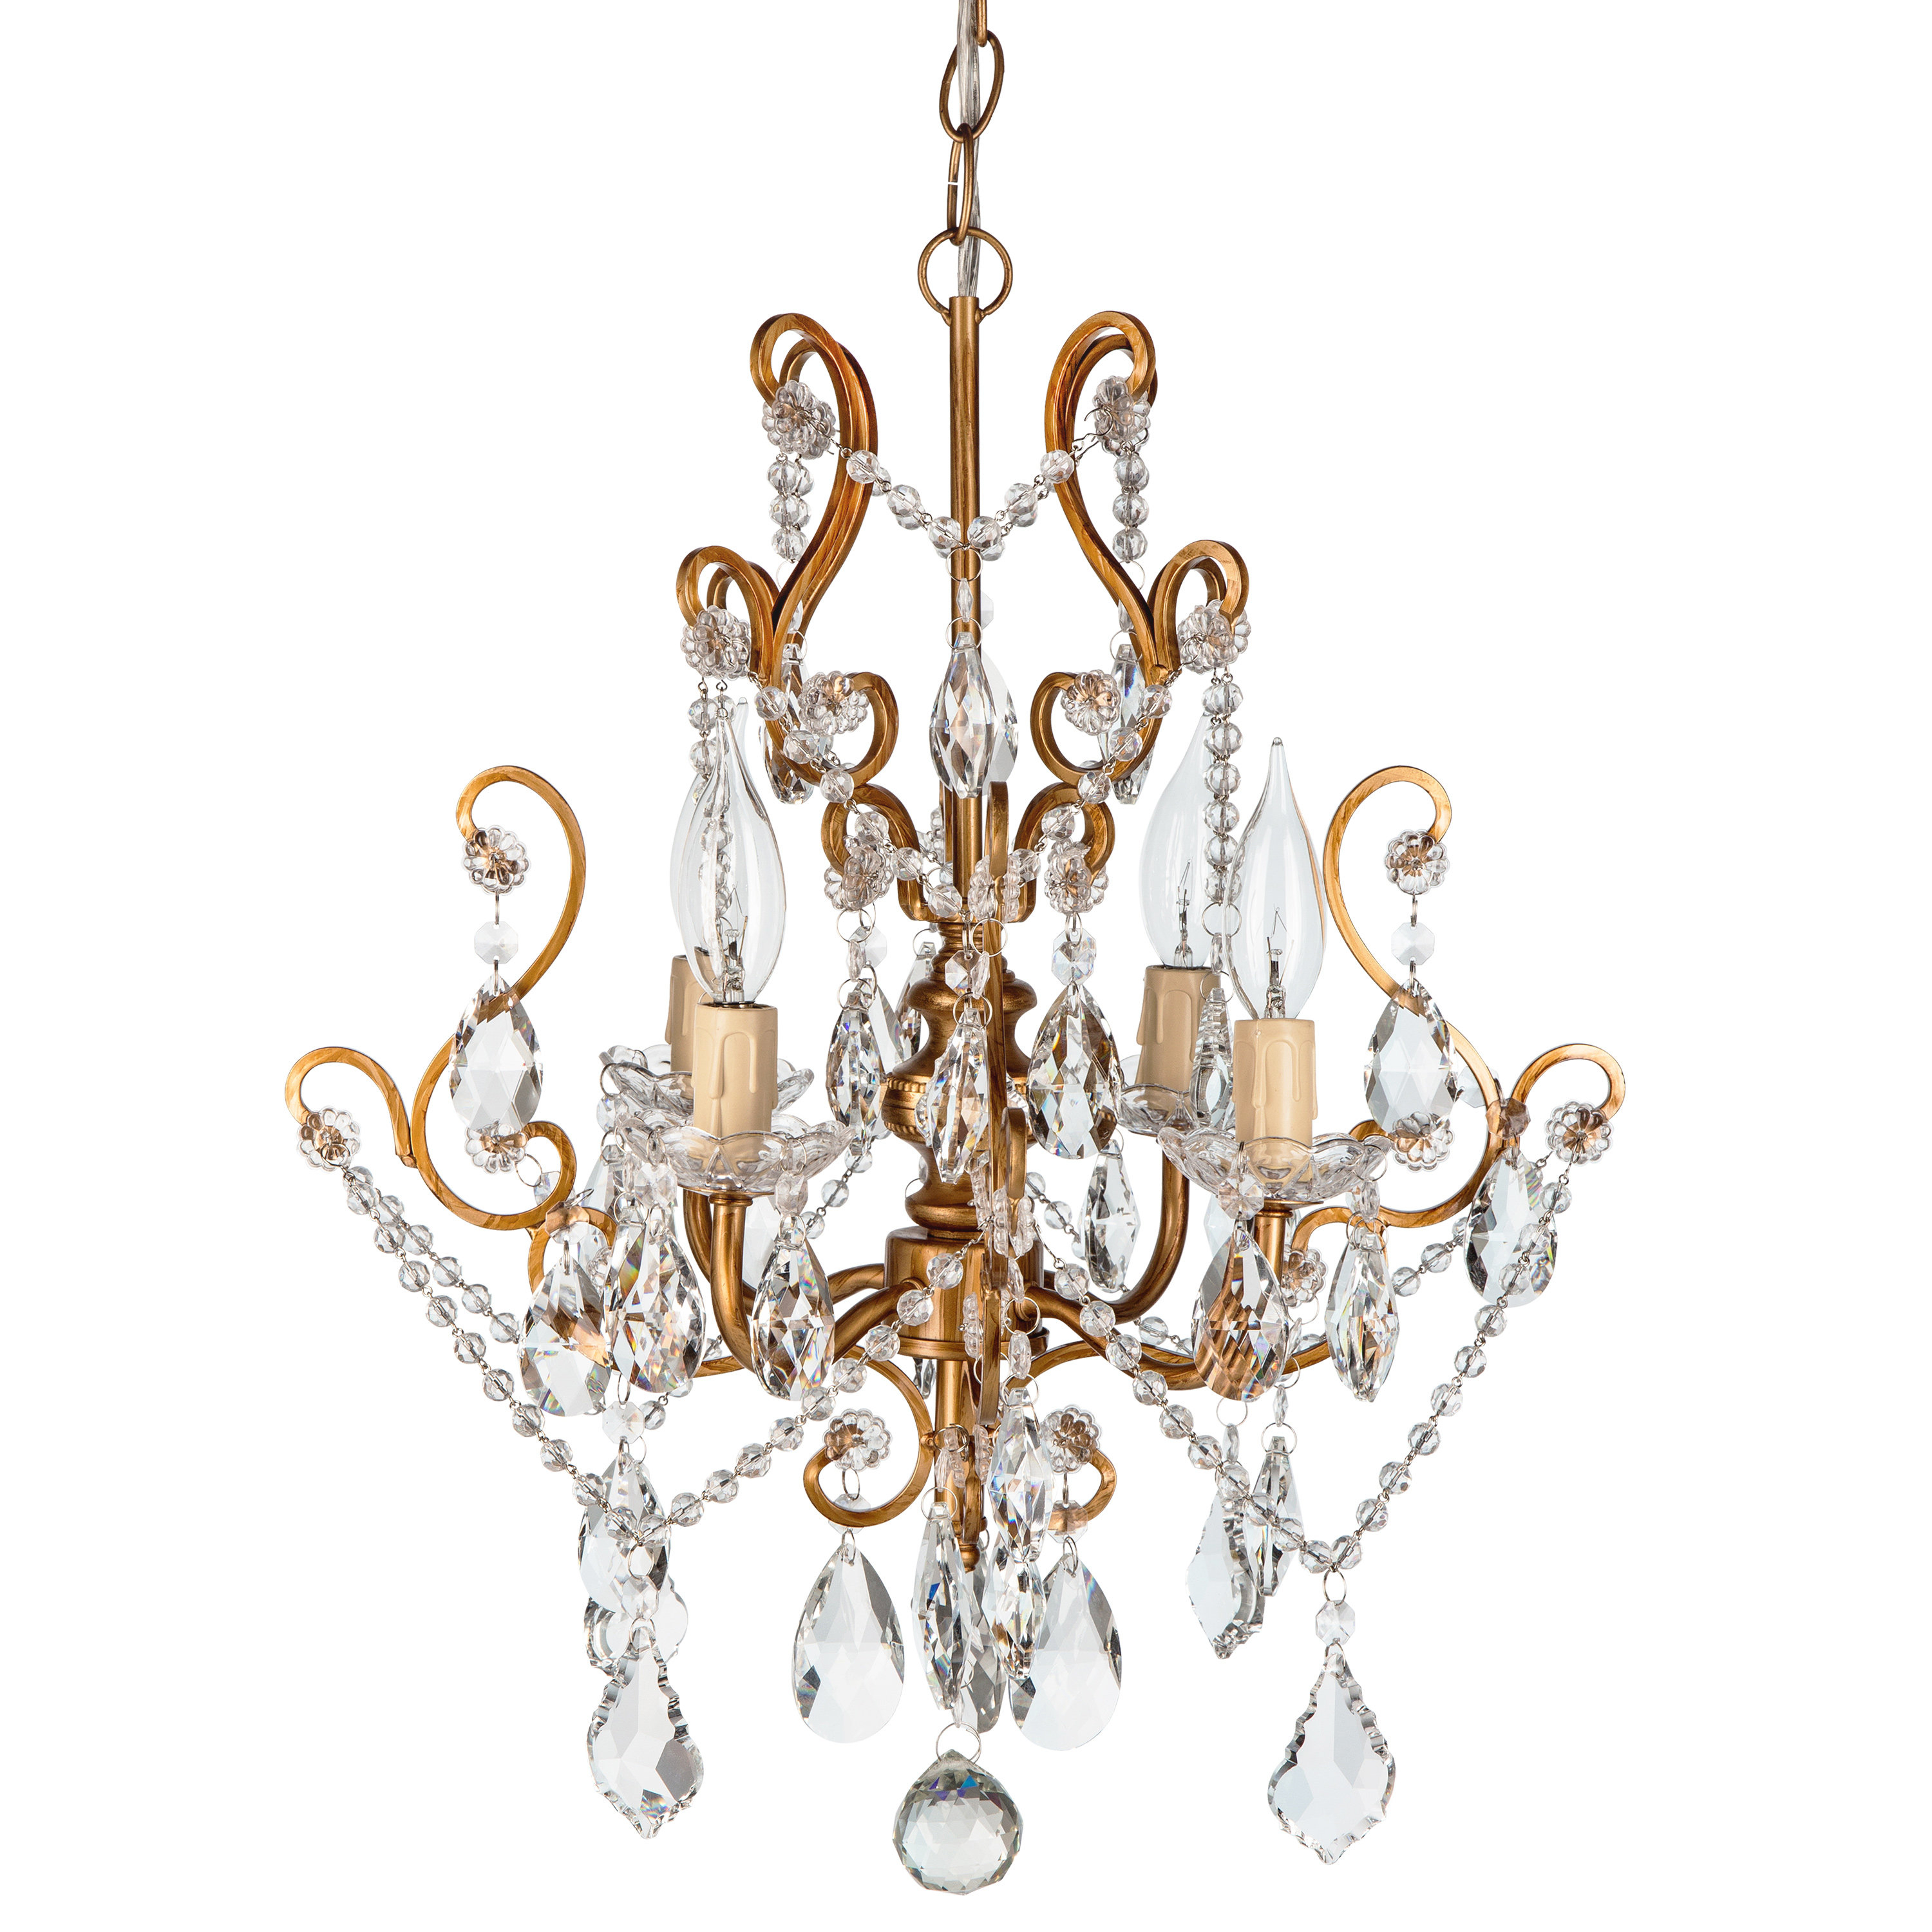 Flemington 4 Light Candle Style Chandelier Pertaining To Aldora 4 Light Candle Style Chandeliers (View 5 of 30)